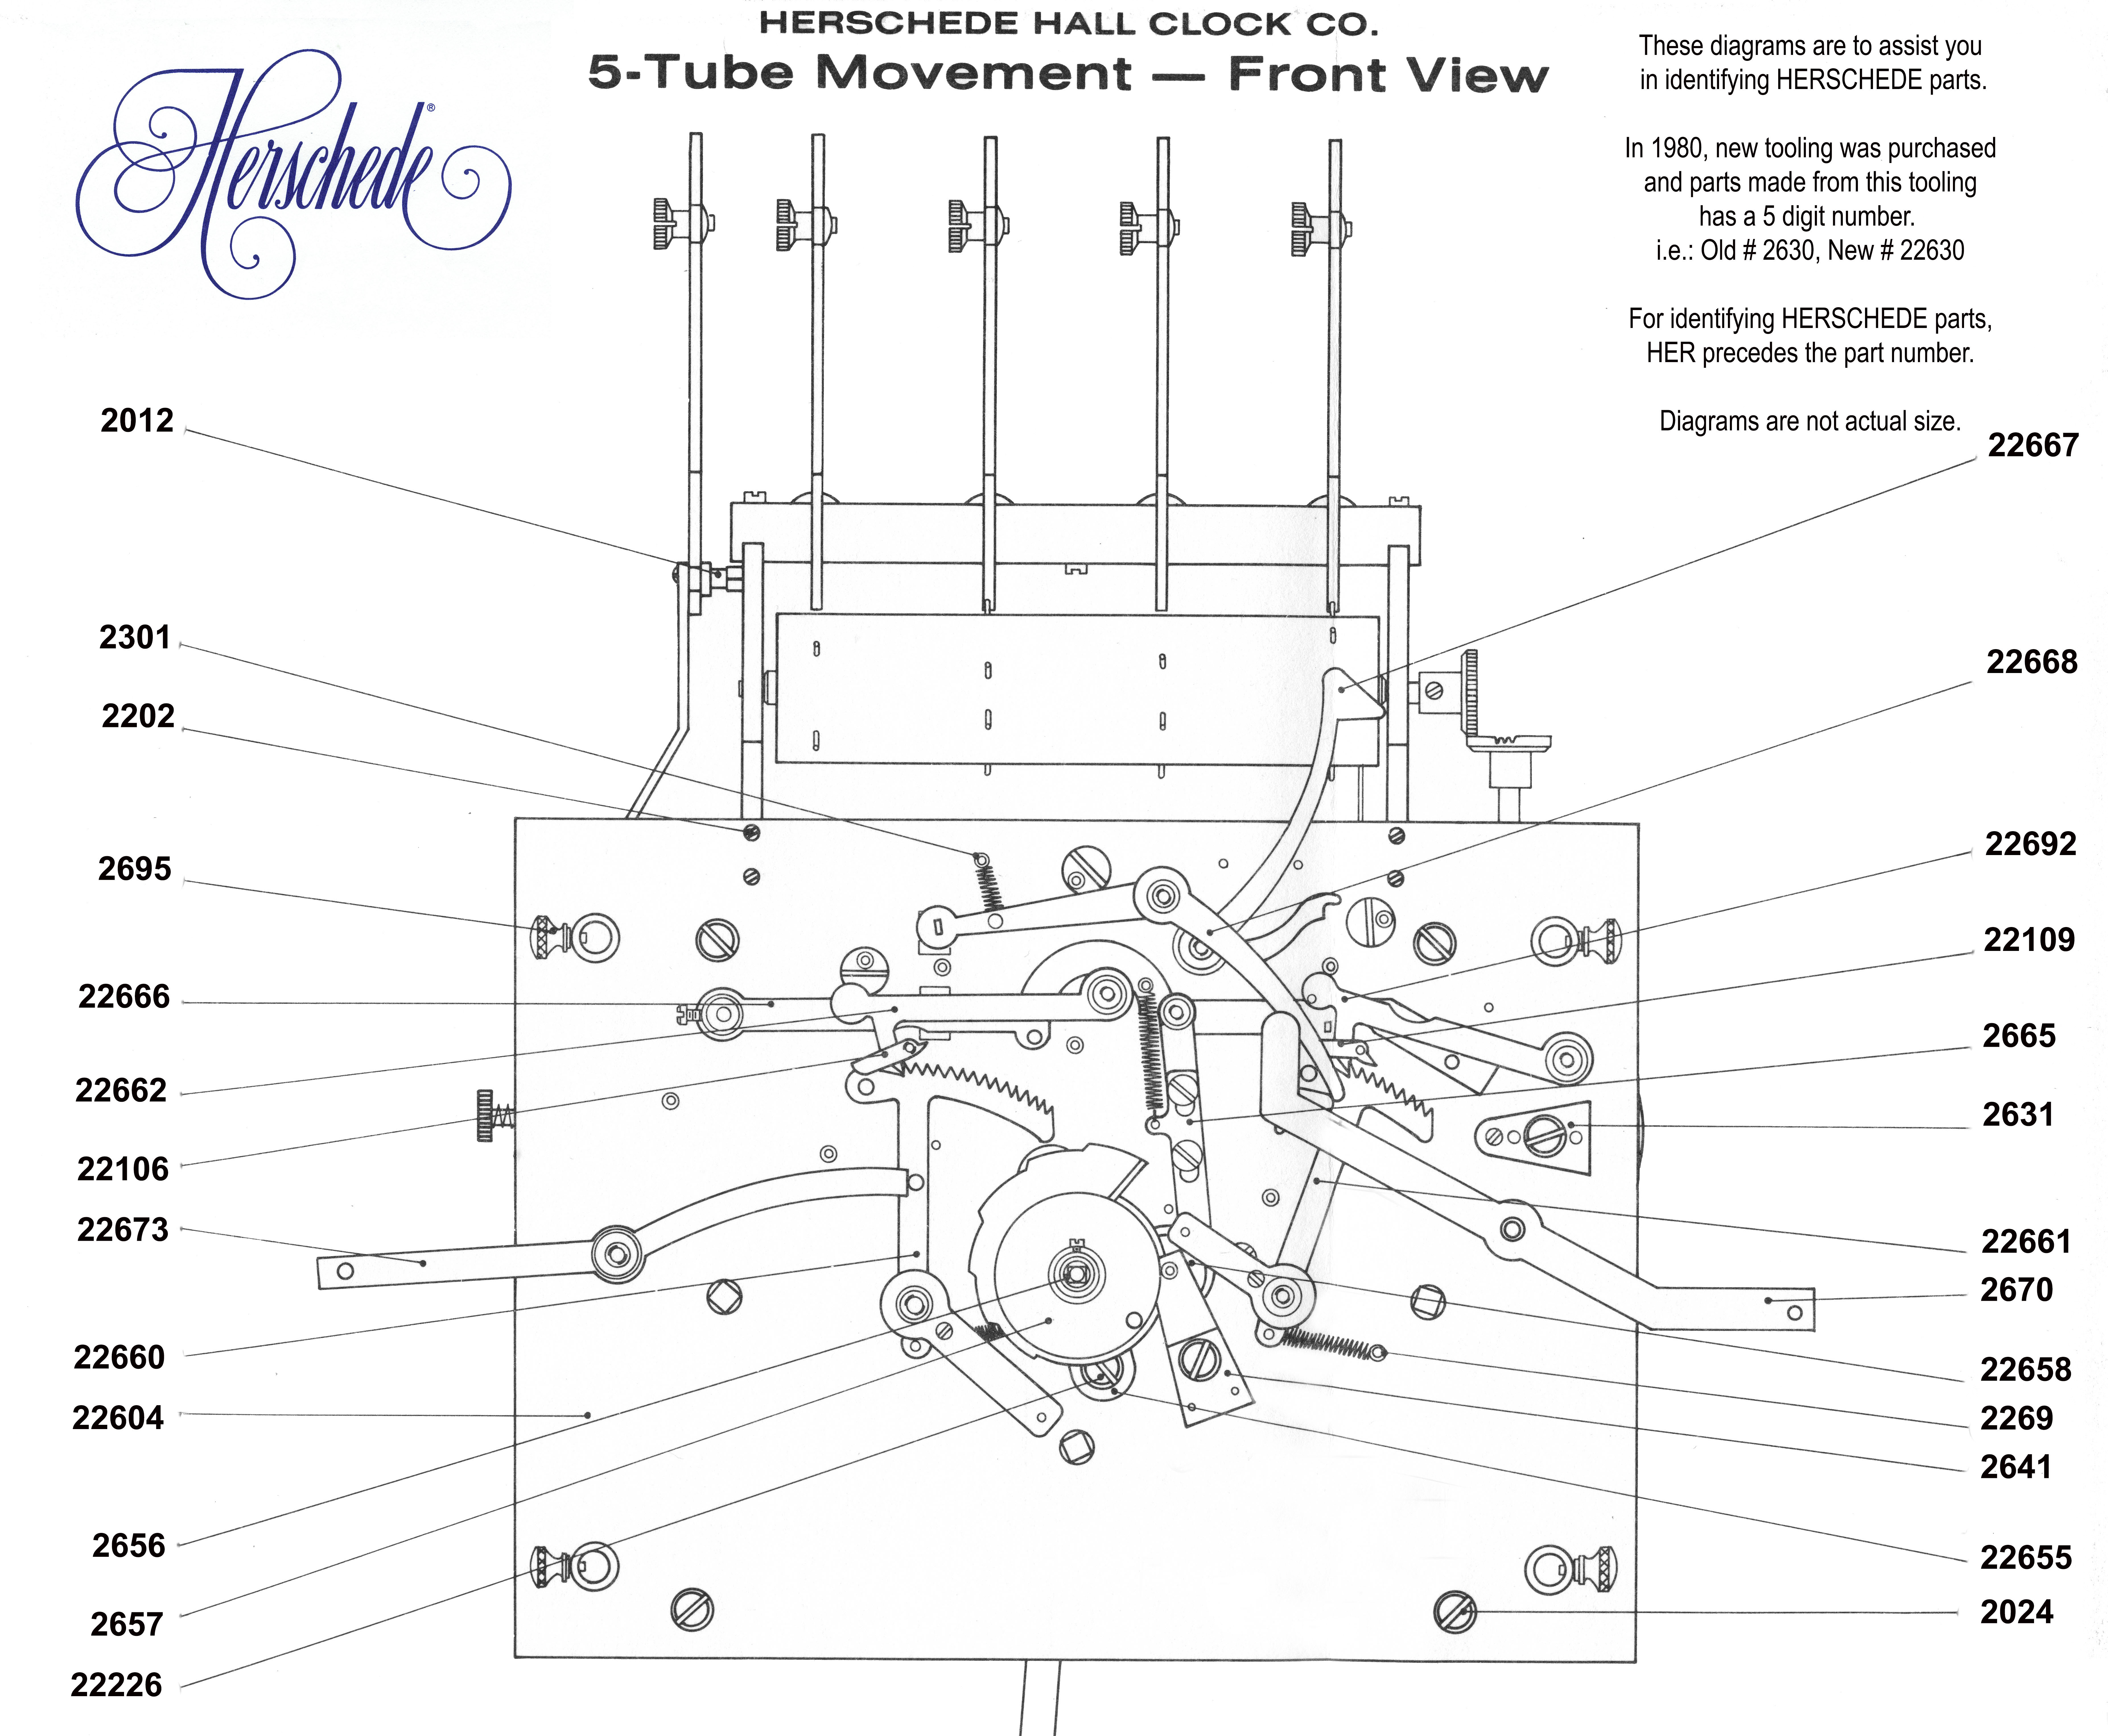 her-5t-front-mov-view-with-pn-r1.jpg